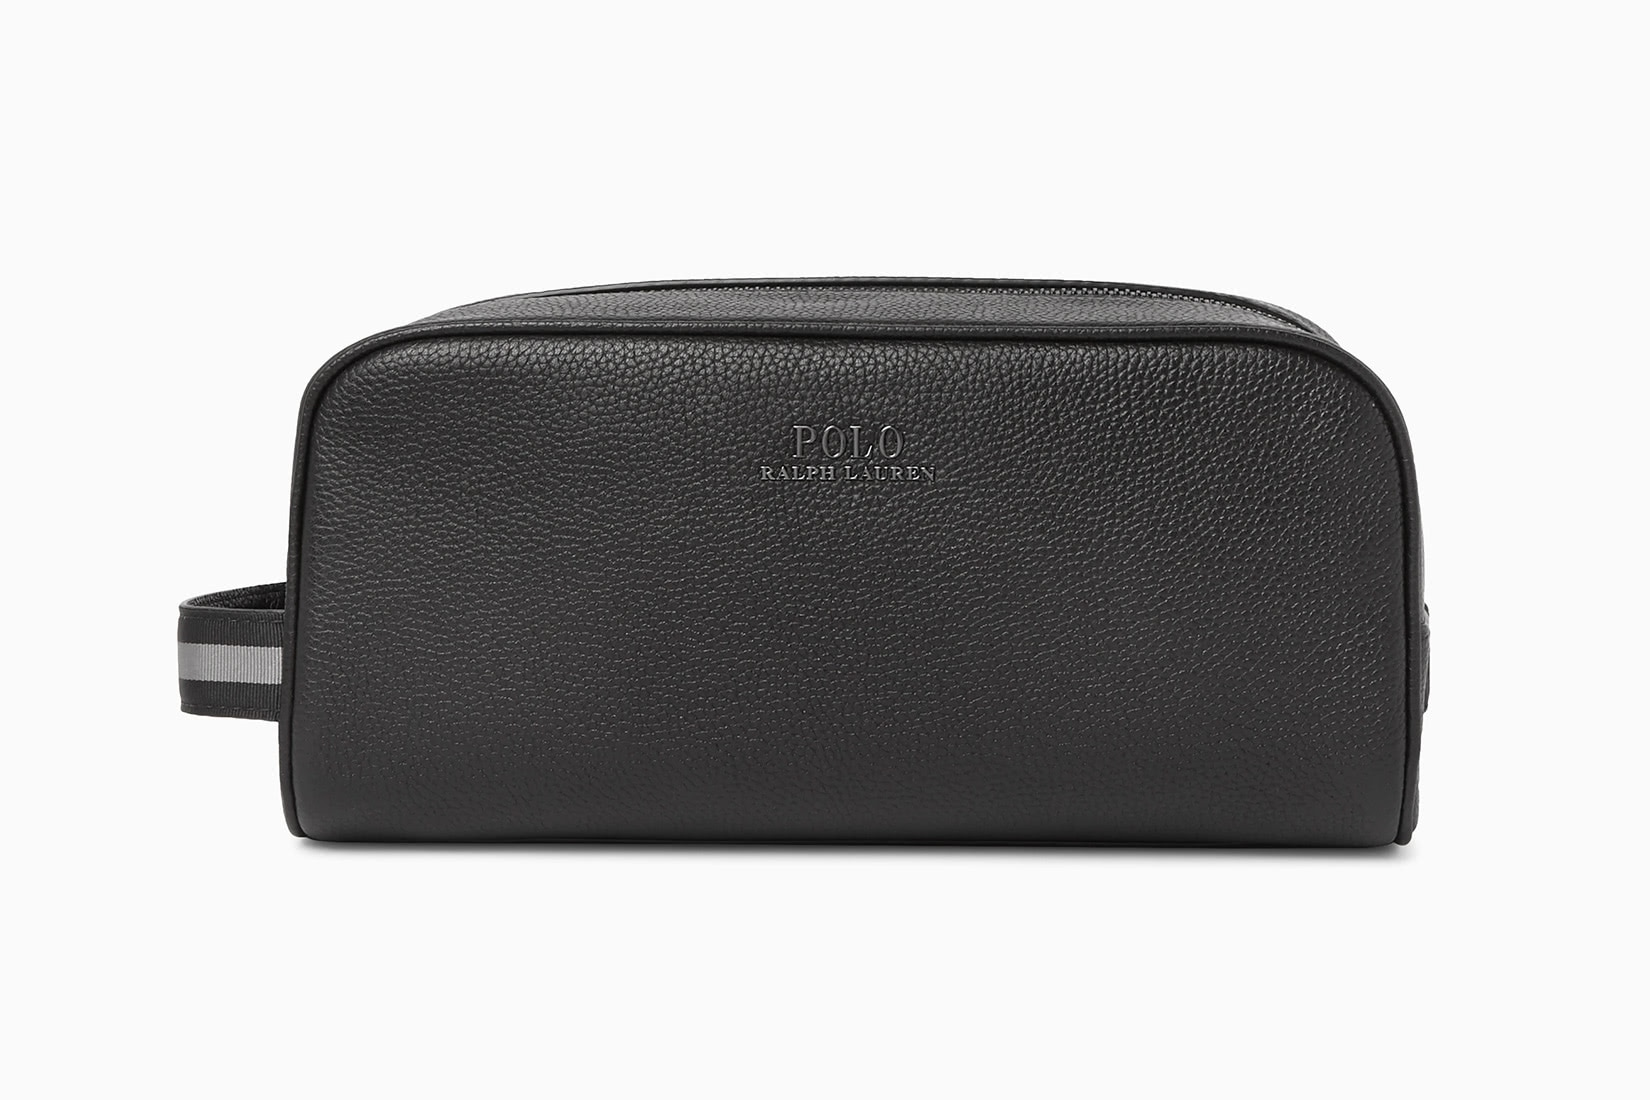 best dopp kit men leather ralph lauren review - Luxe Digital